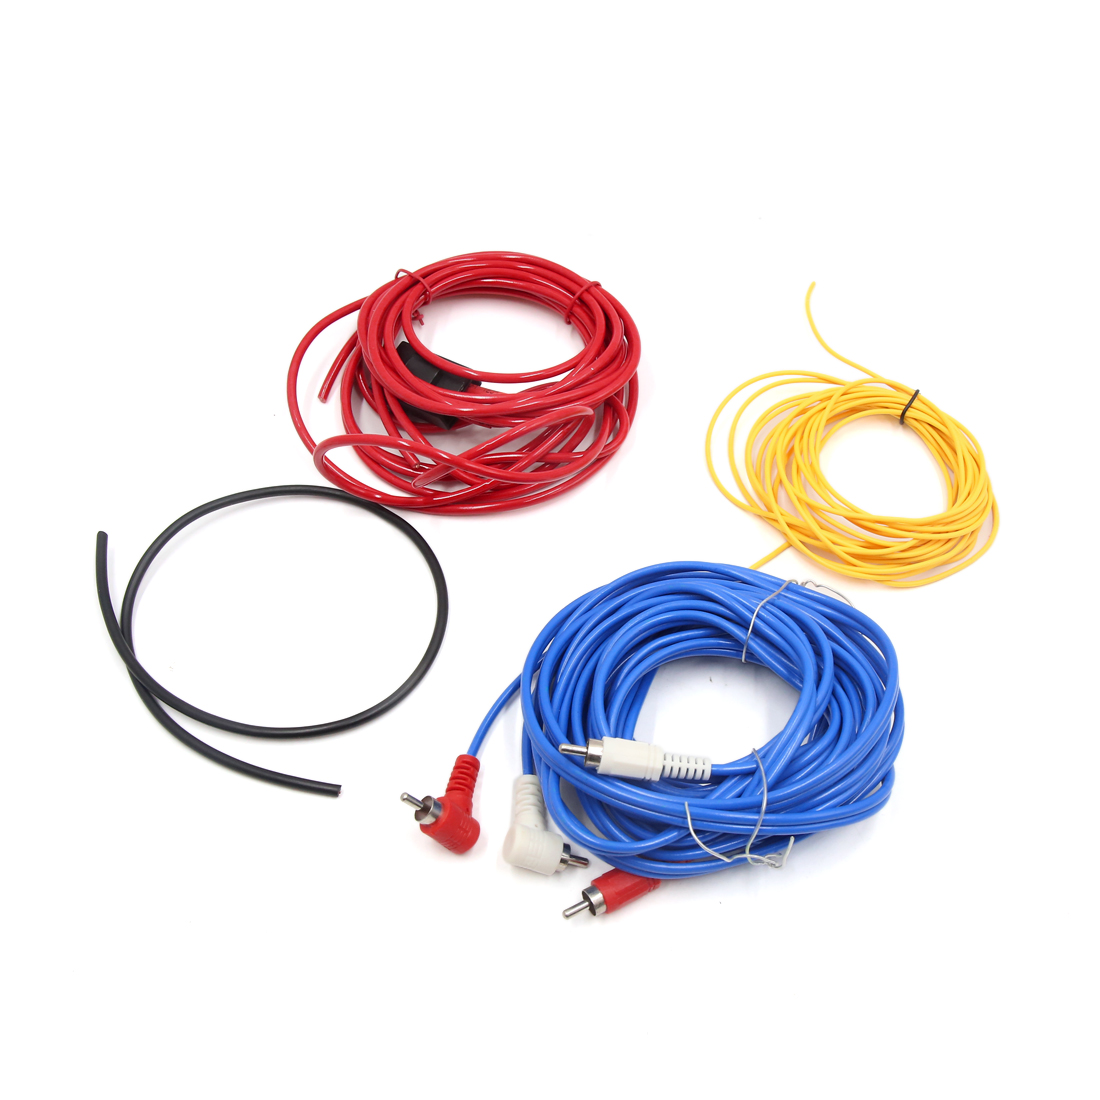 14 GA Car Audio System RCA Power Control Speaker Amplifier Wiring Cable Wire Kit